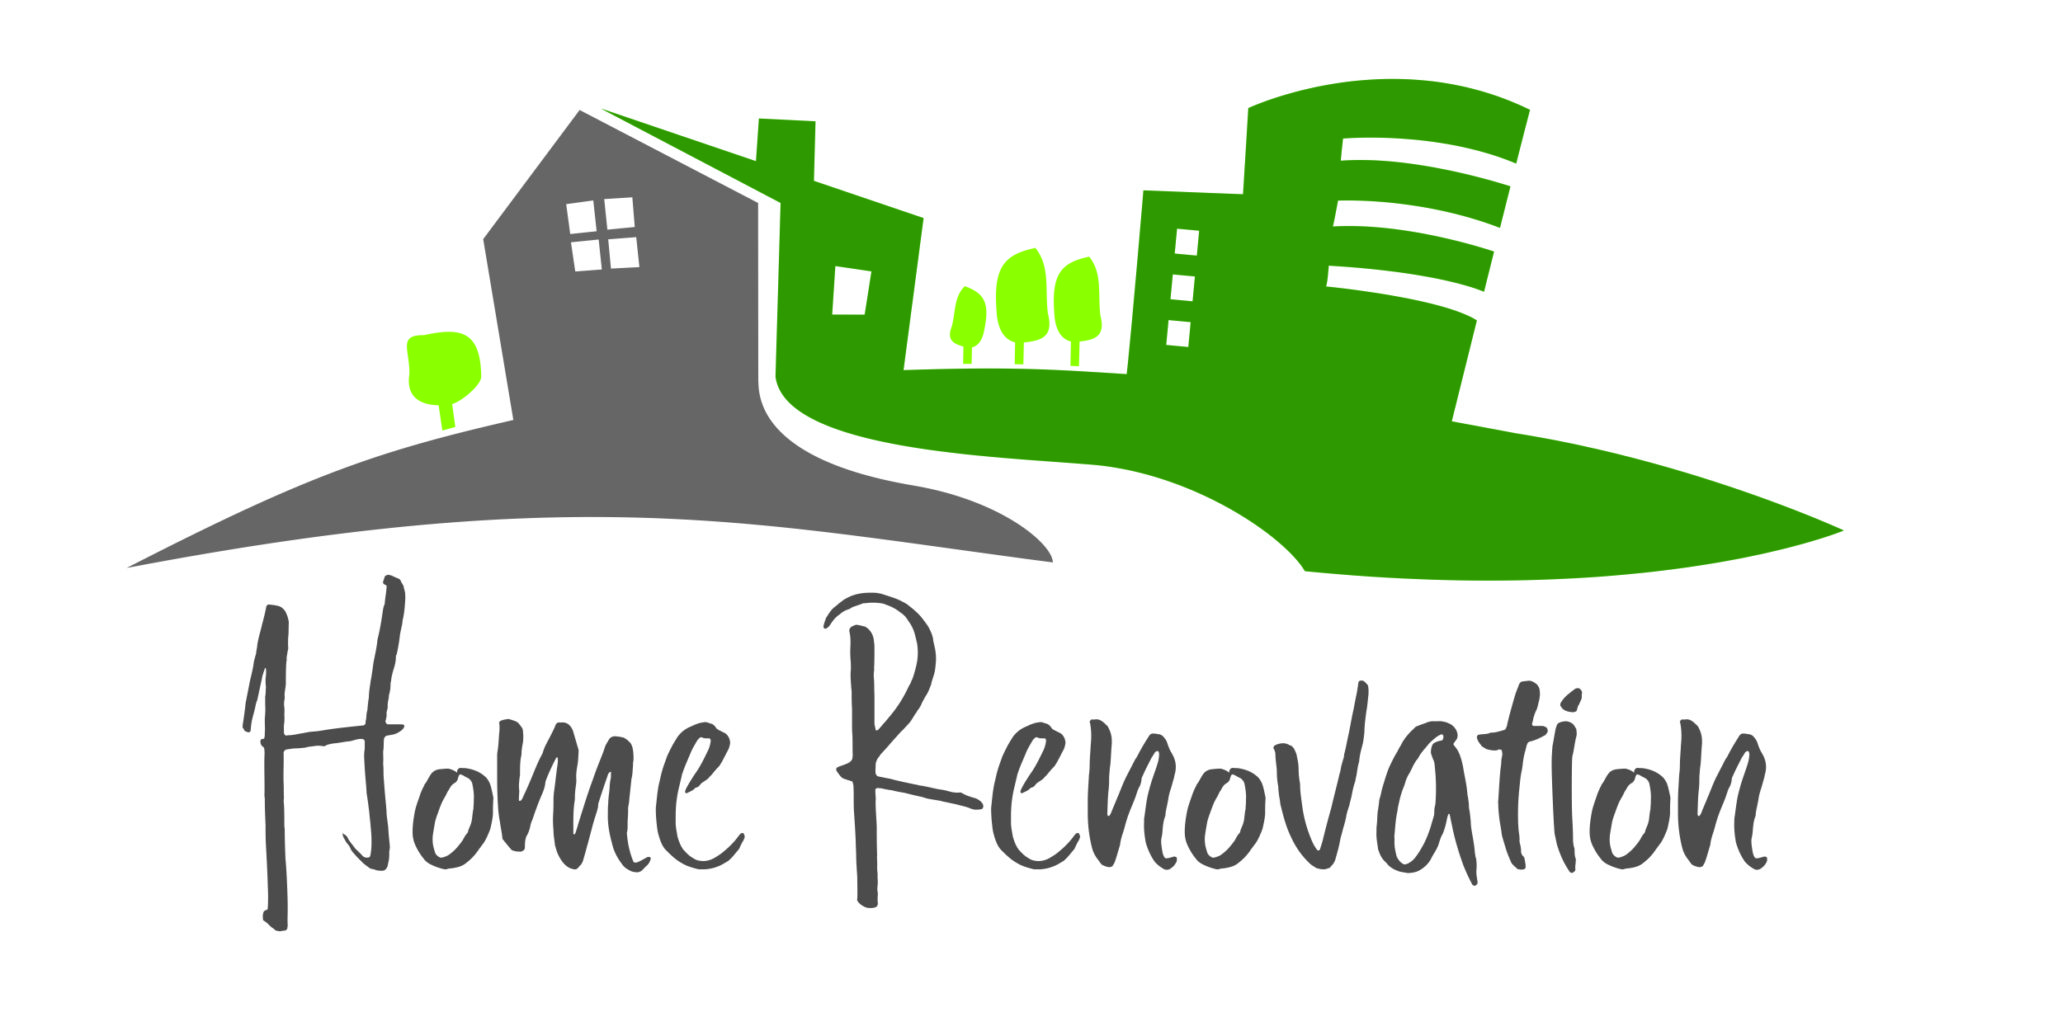 HOMERENOVATION